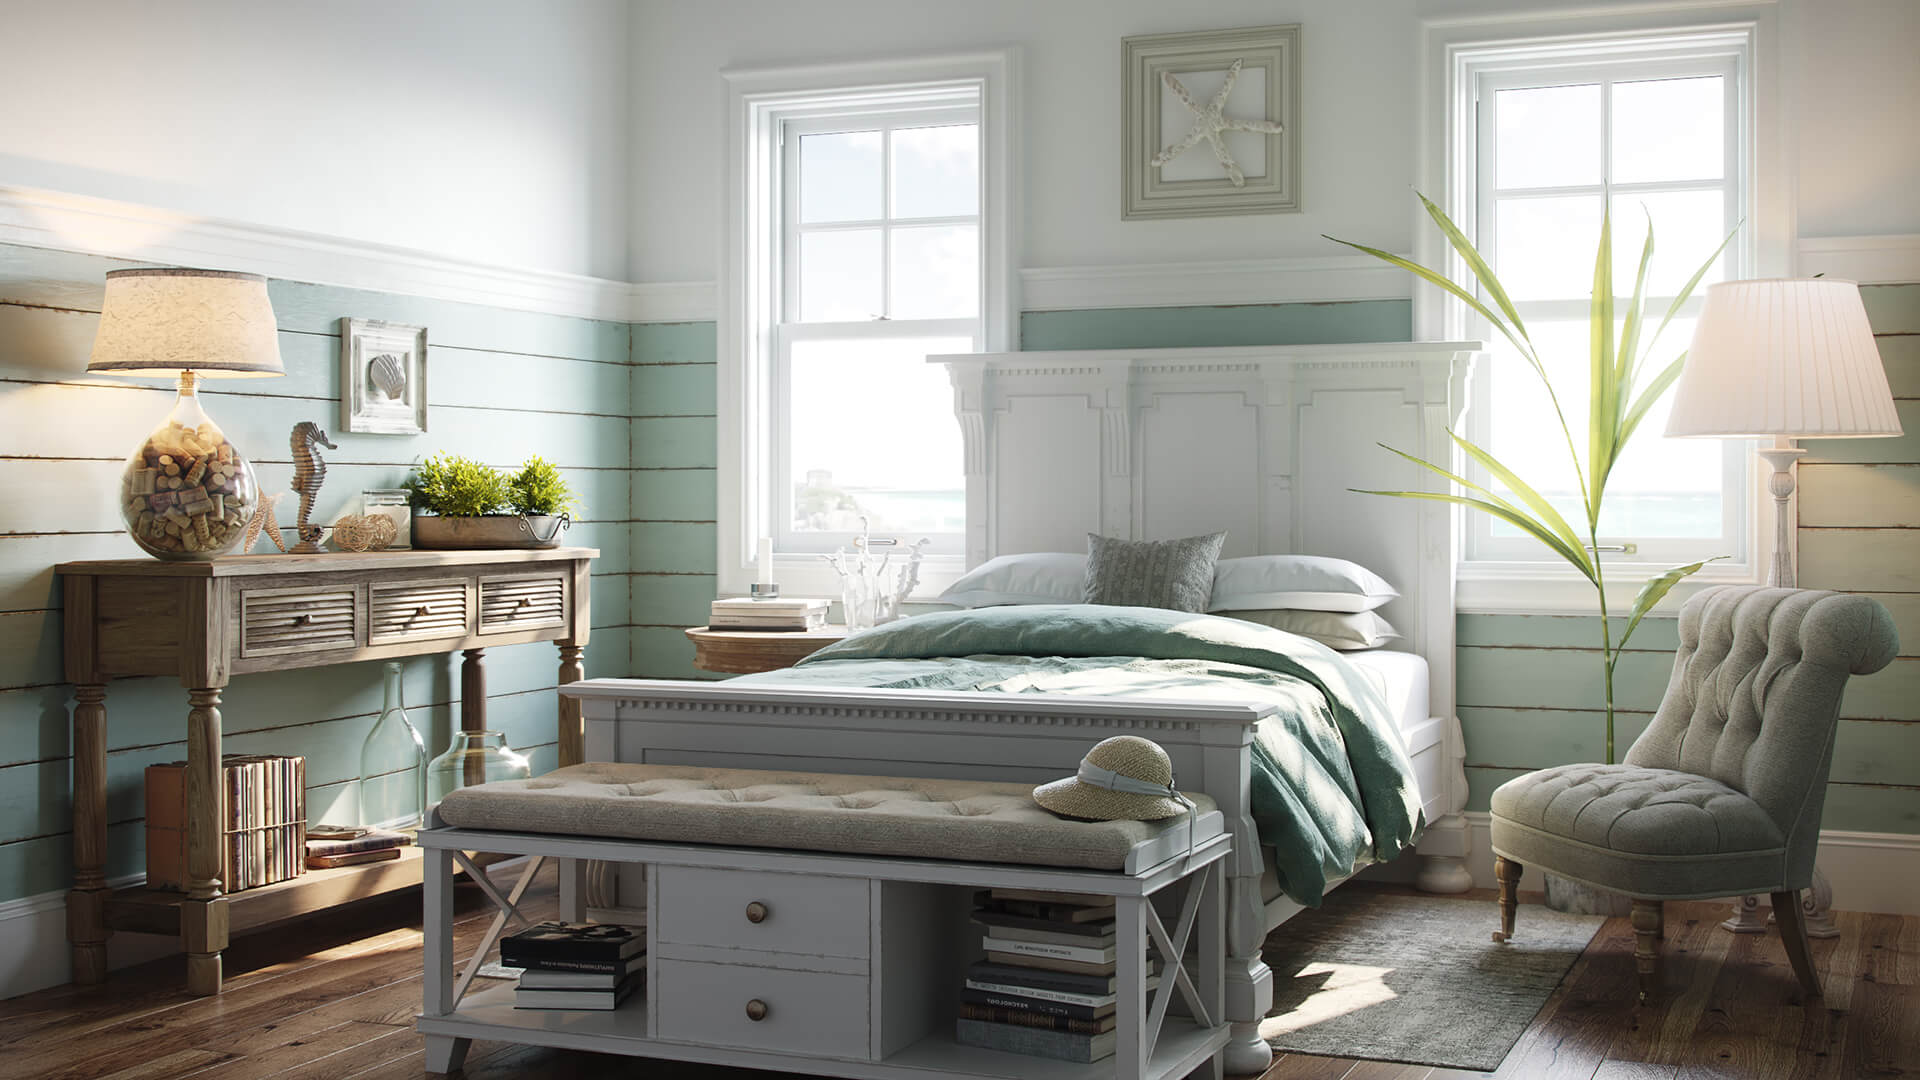 Corona Interior Render for a King Size Bed